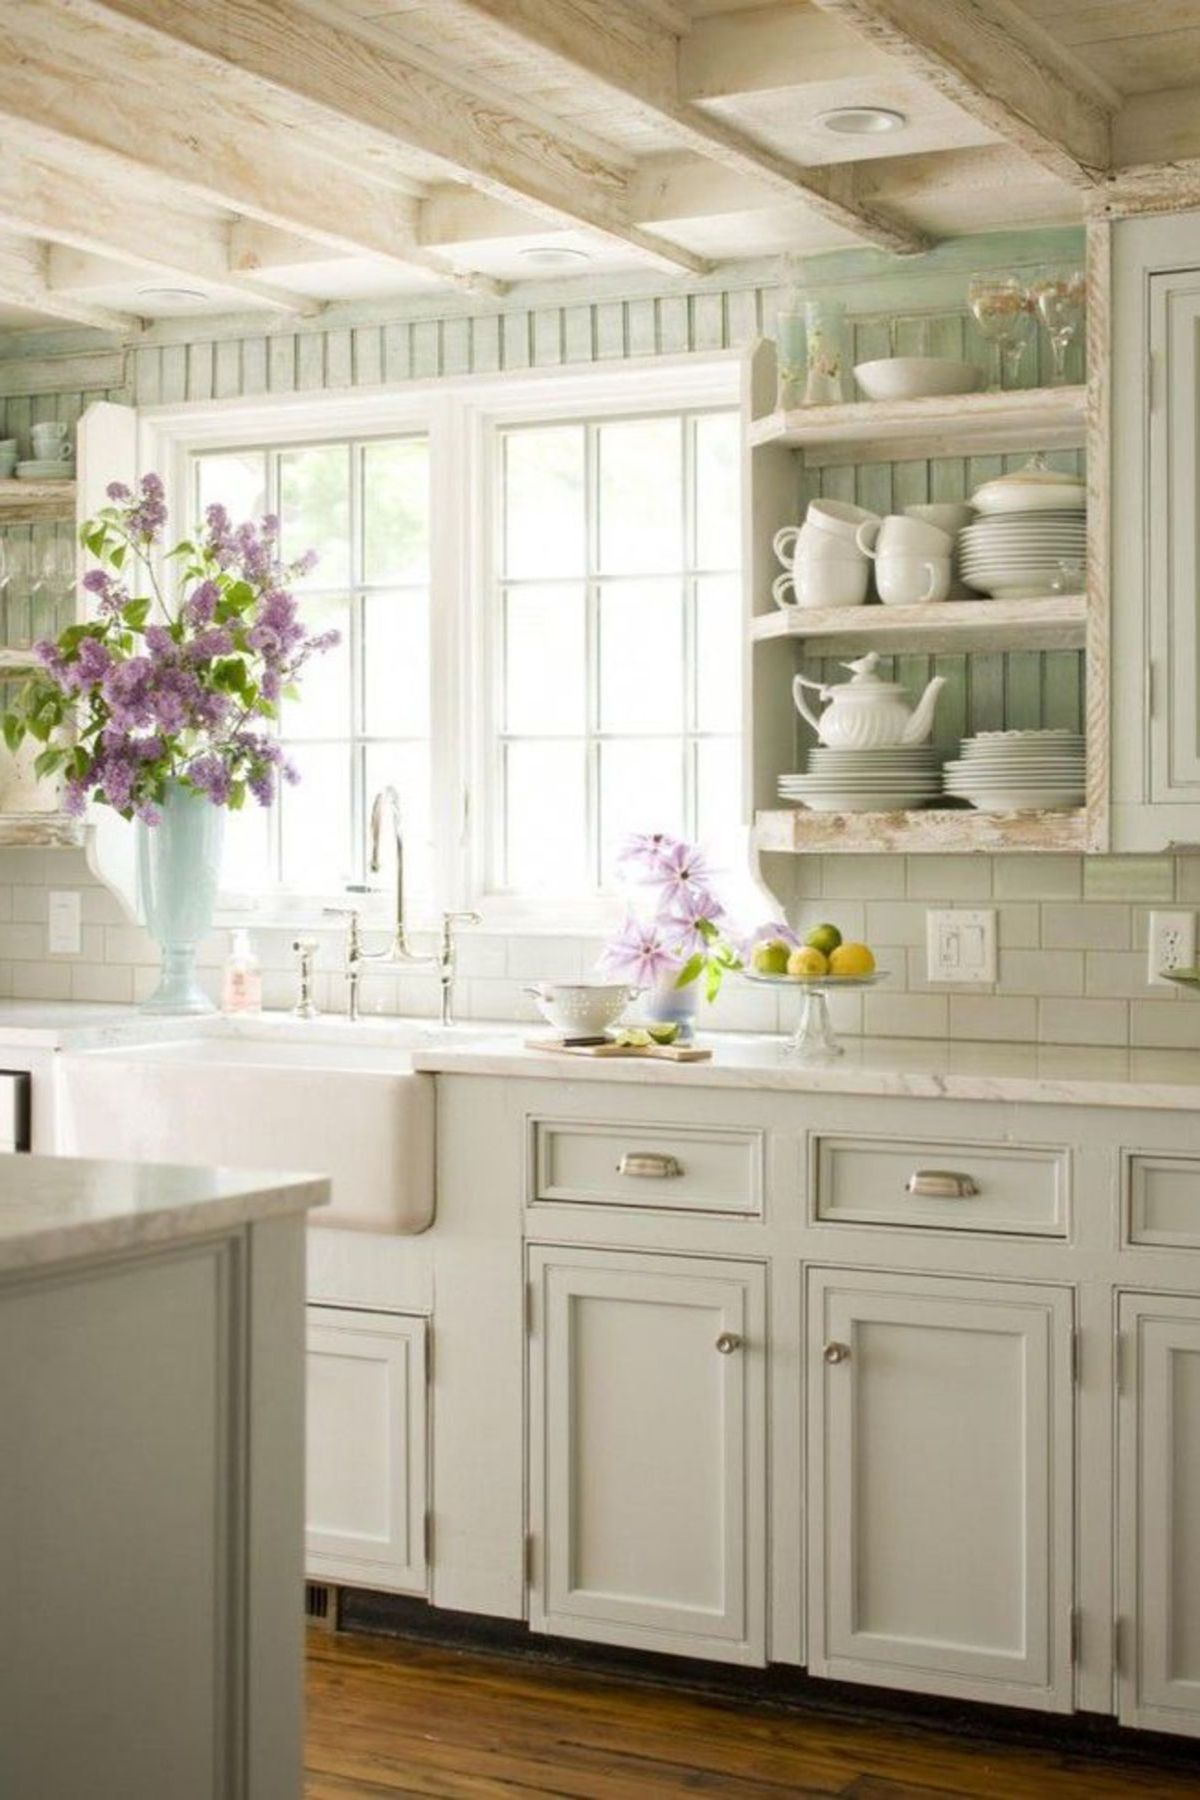 country farm kitchen decor on farmhouse kitchen ideas pictures of country farmhouse kitchens on a budget new for 2021 country kitchen designs country kitchen farmhouse kitchen style farmhouse kitchen ideas pictures of